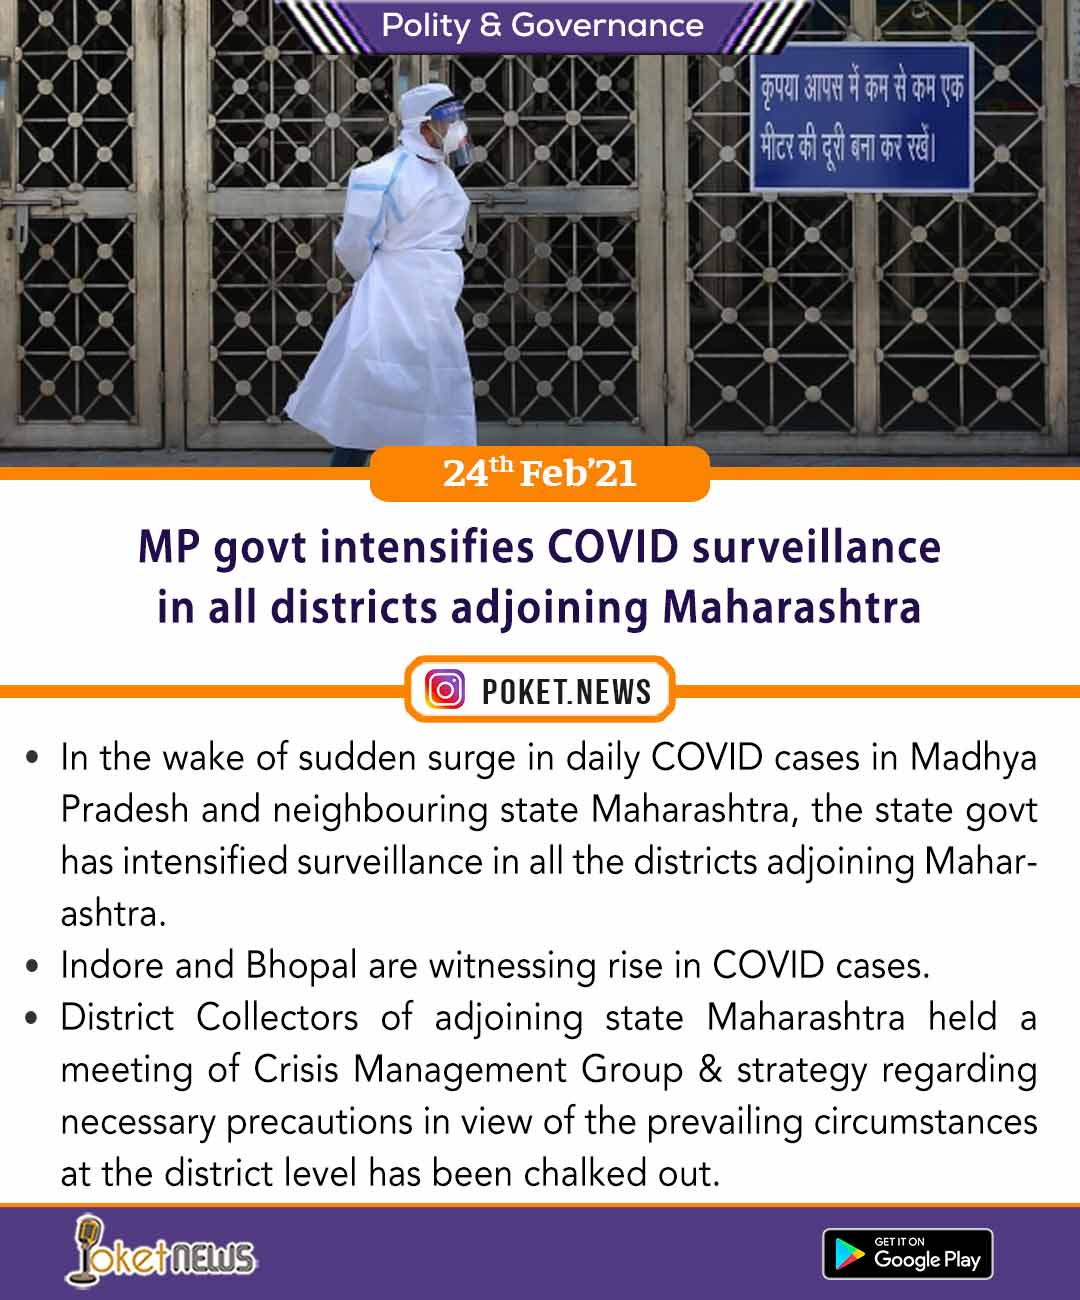 MP govt intensifies COVID surveillance in all districts adjoining Maharashtra